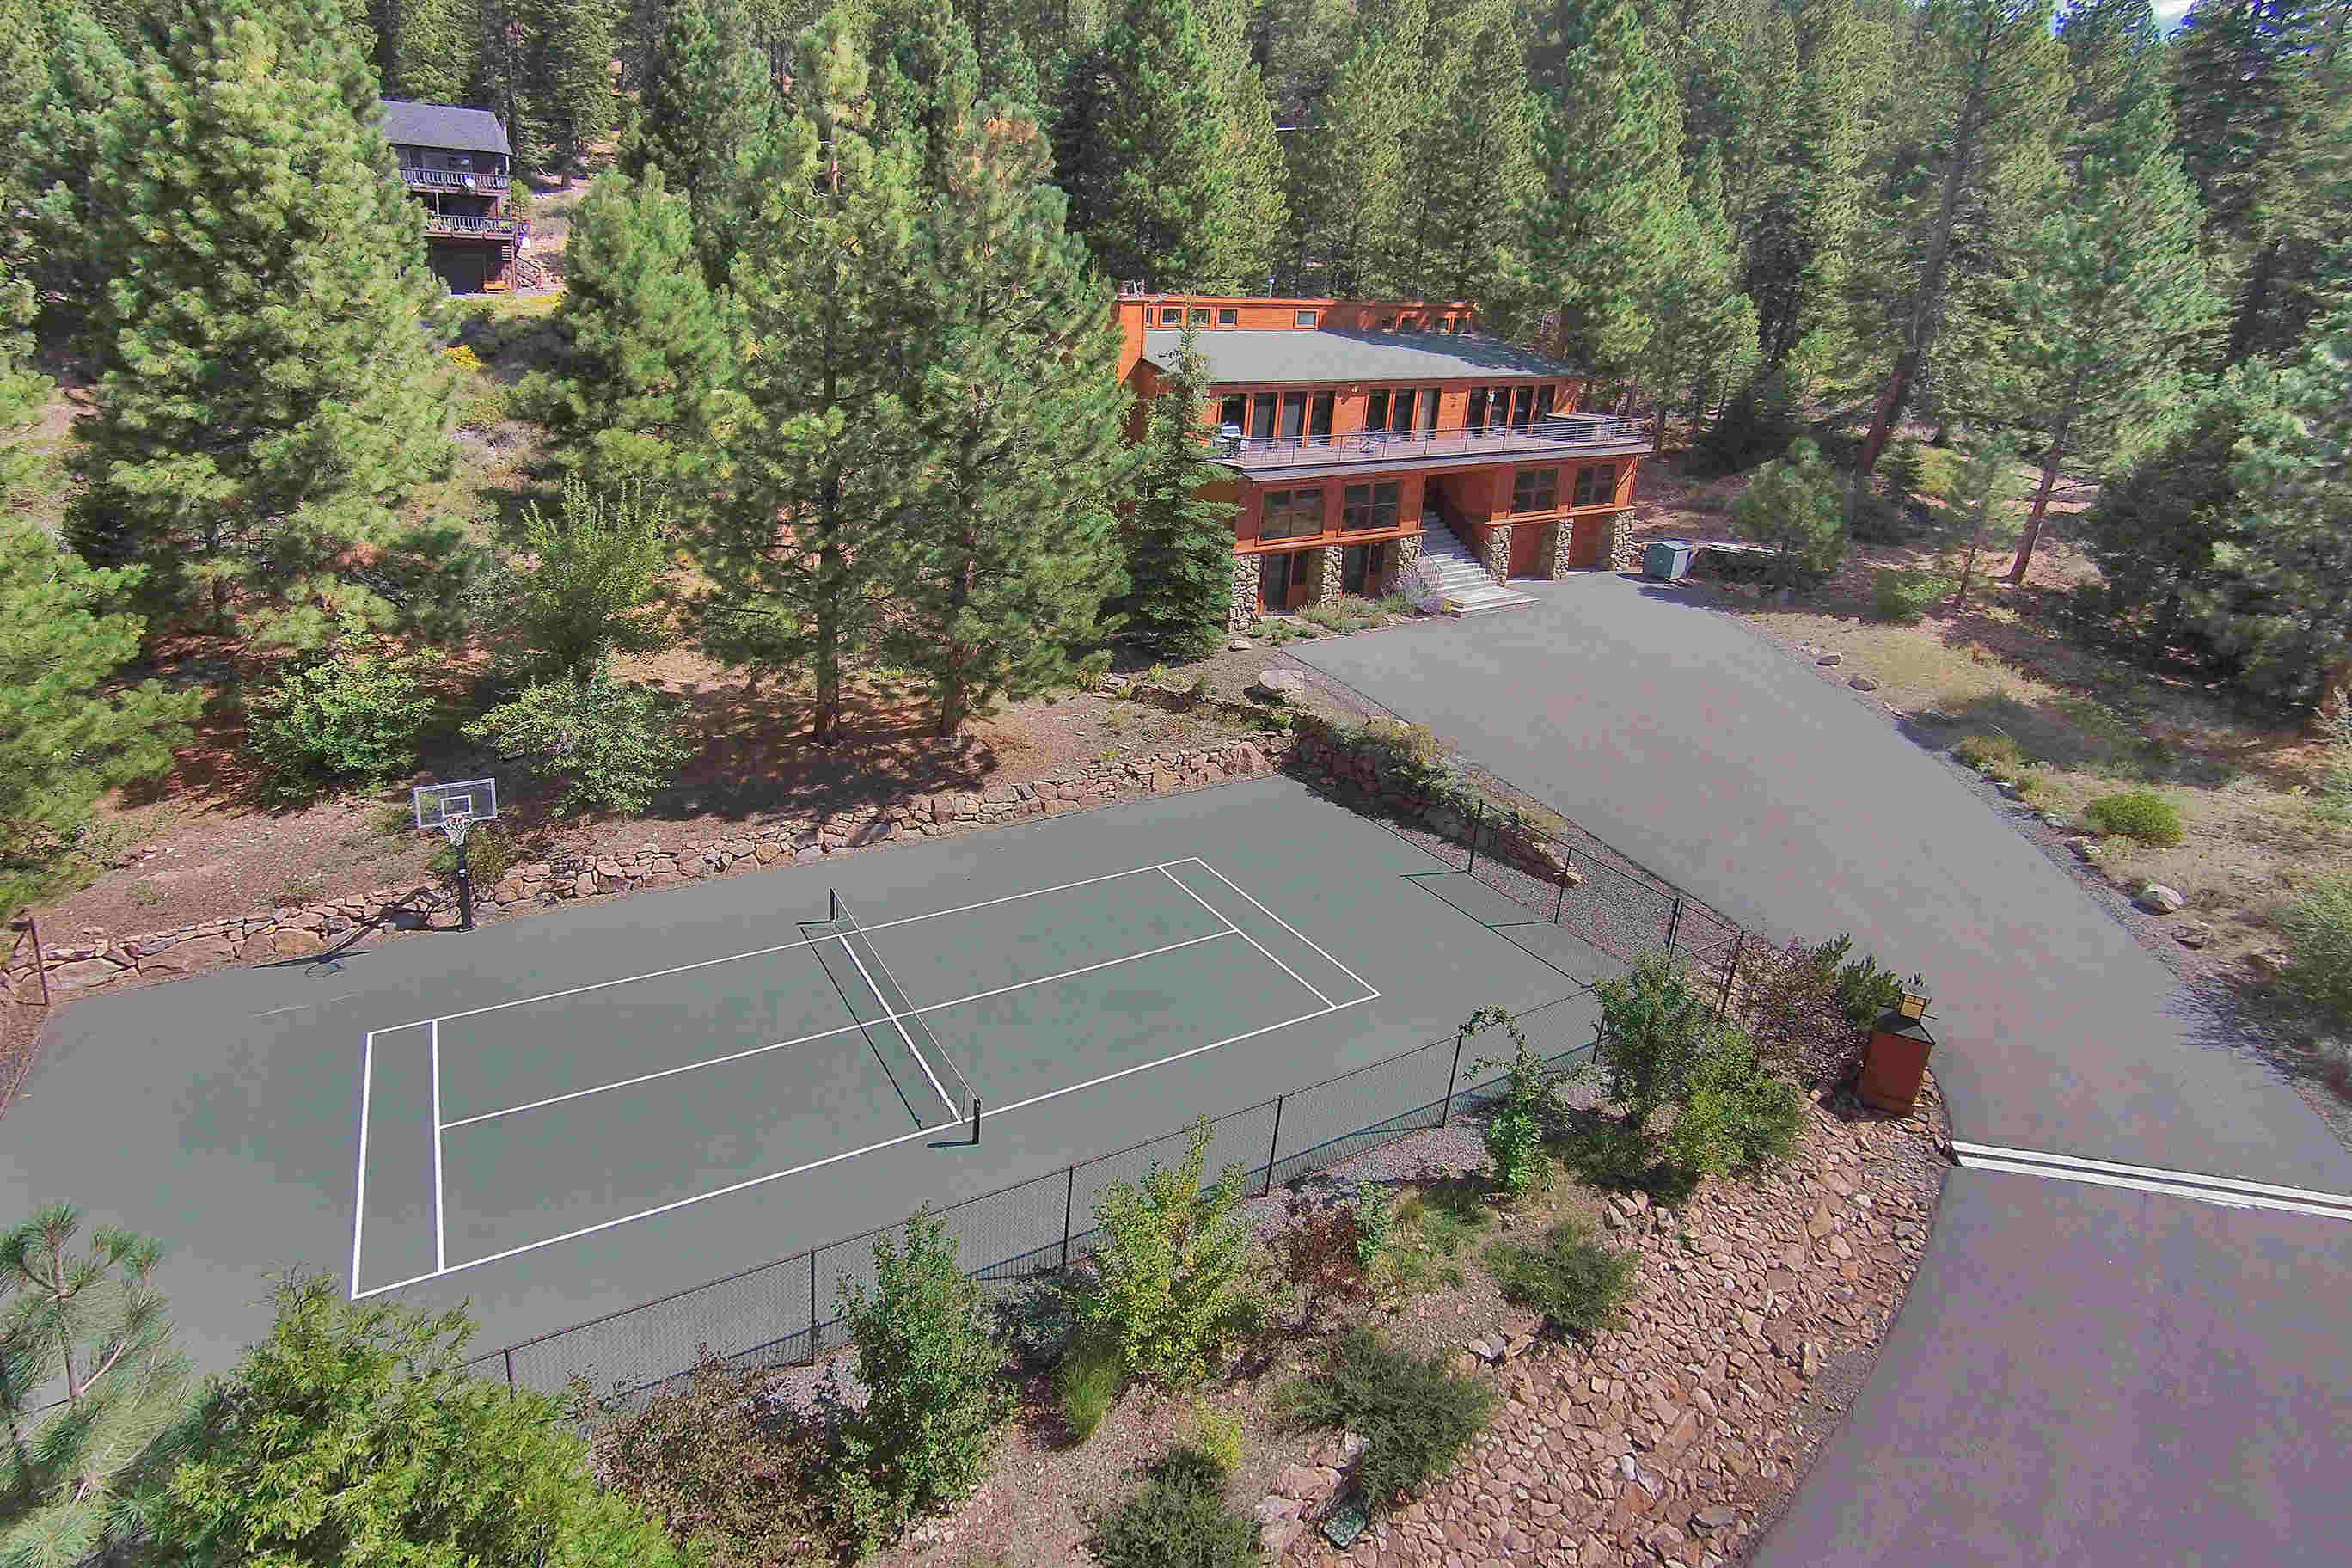 singles in carnelian bay Agate bay homes for sale  #20181284 | single family home $629,000   5101 north lake boulevard #131 carnelian bay, ca 96140  33 1 beds .